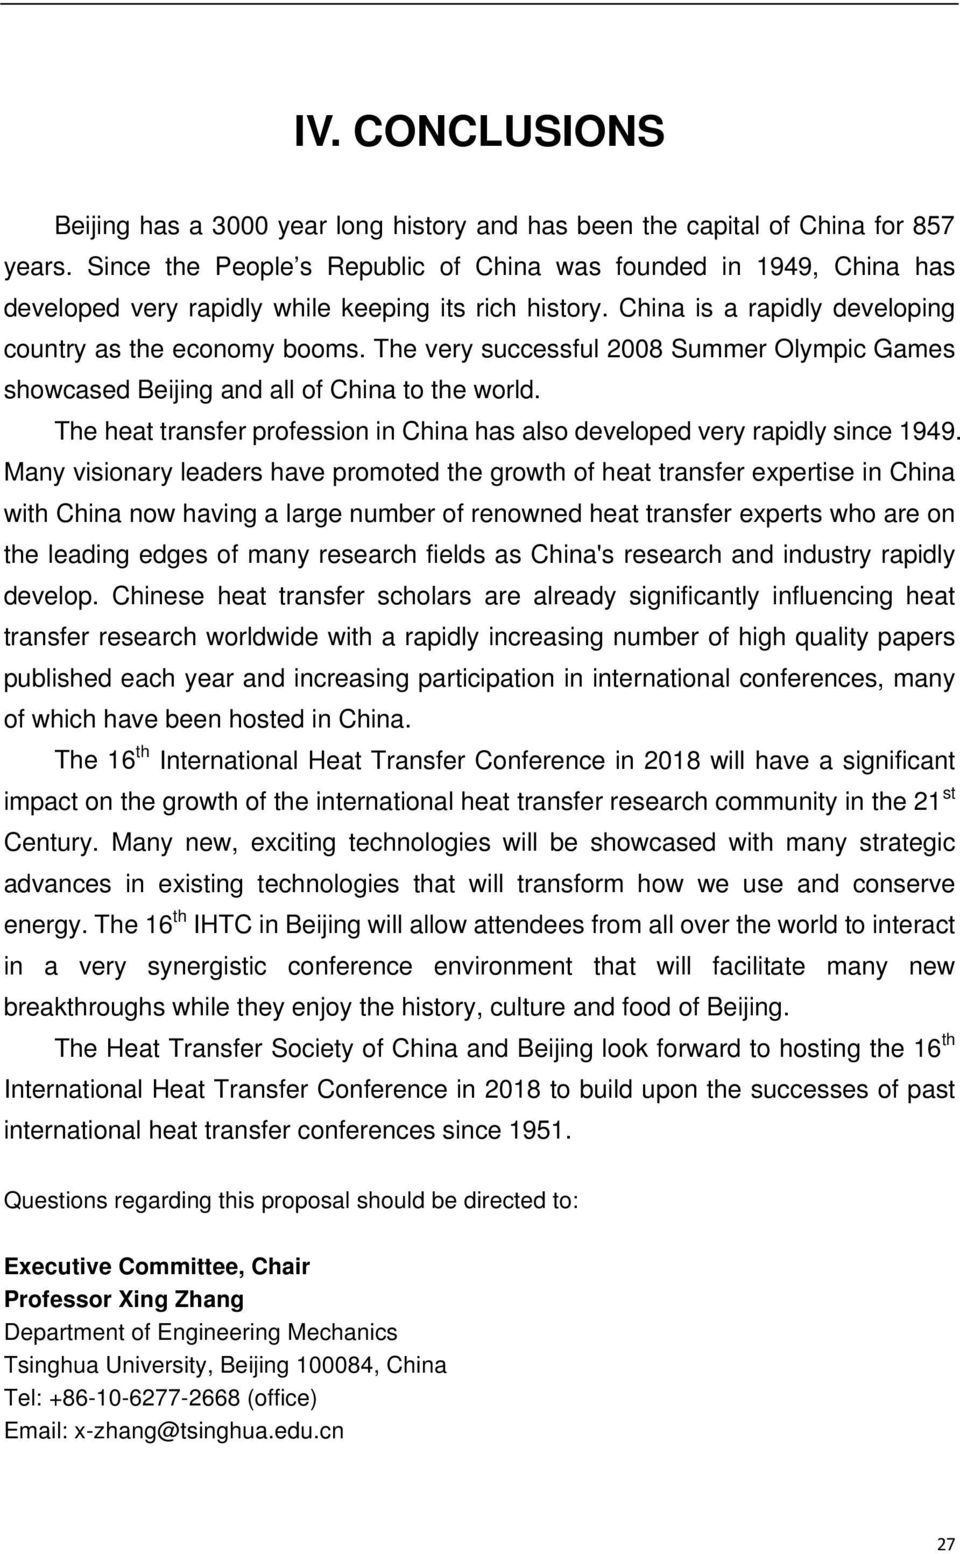 The very successful 2008 Summer Olympic Games showcased Beijing and all of China to the world. The heat transfer profession in China has also developed very rapidly since 1949.